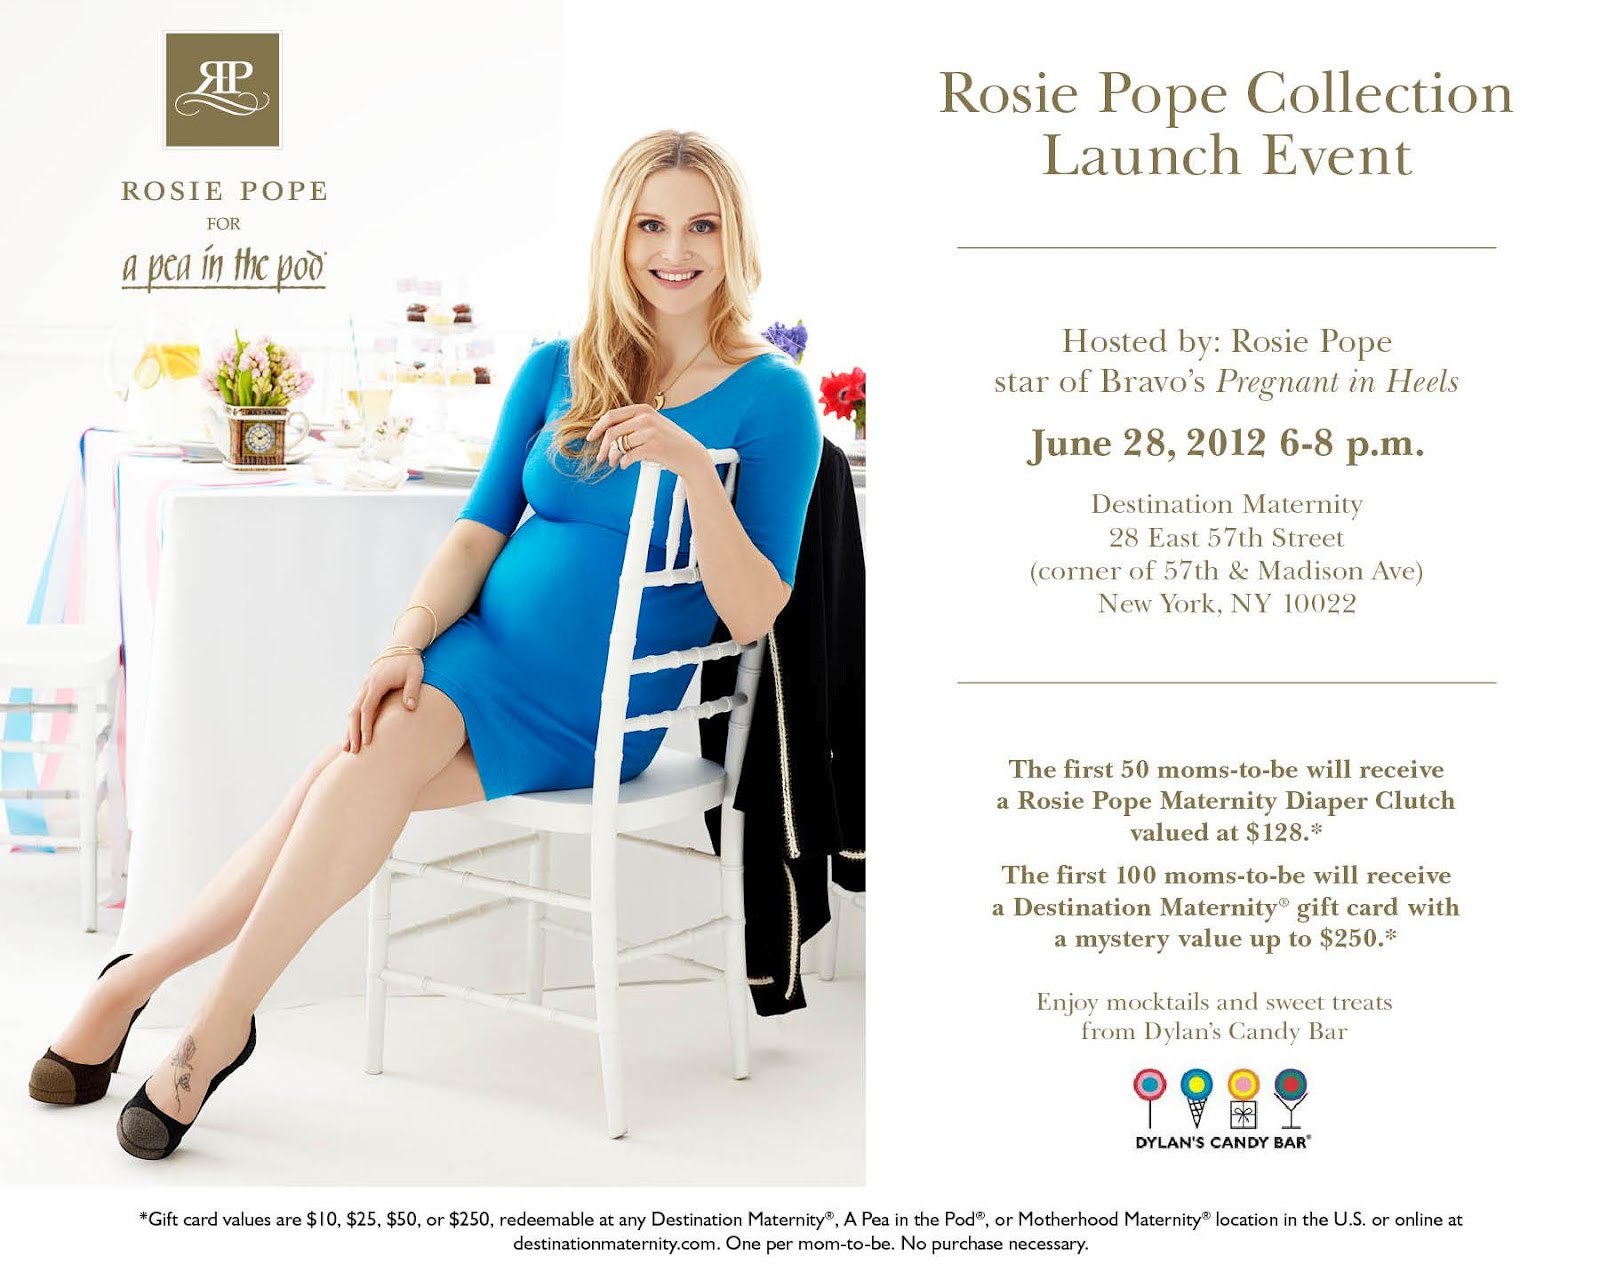 971c761a28ef2 Celebrate Rosie Pope's launch of her new collection, Rosie Pope for A Pea  in the Pod Collection™ on Thursday, June 28th from 6-8PM at the Destination  ...